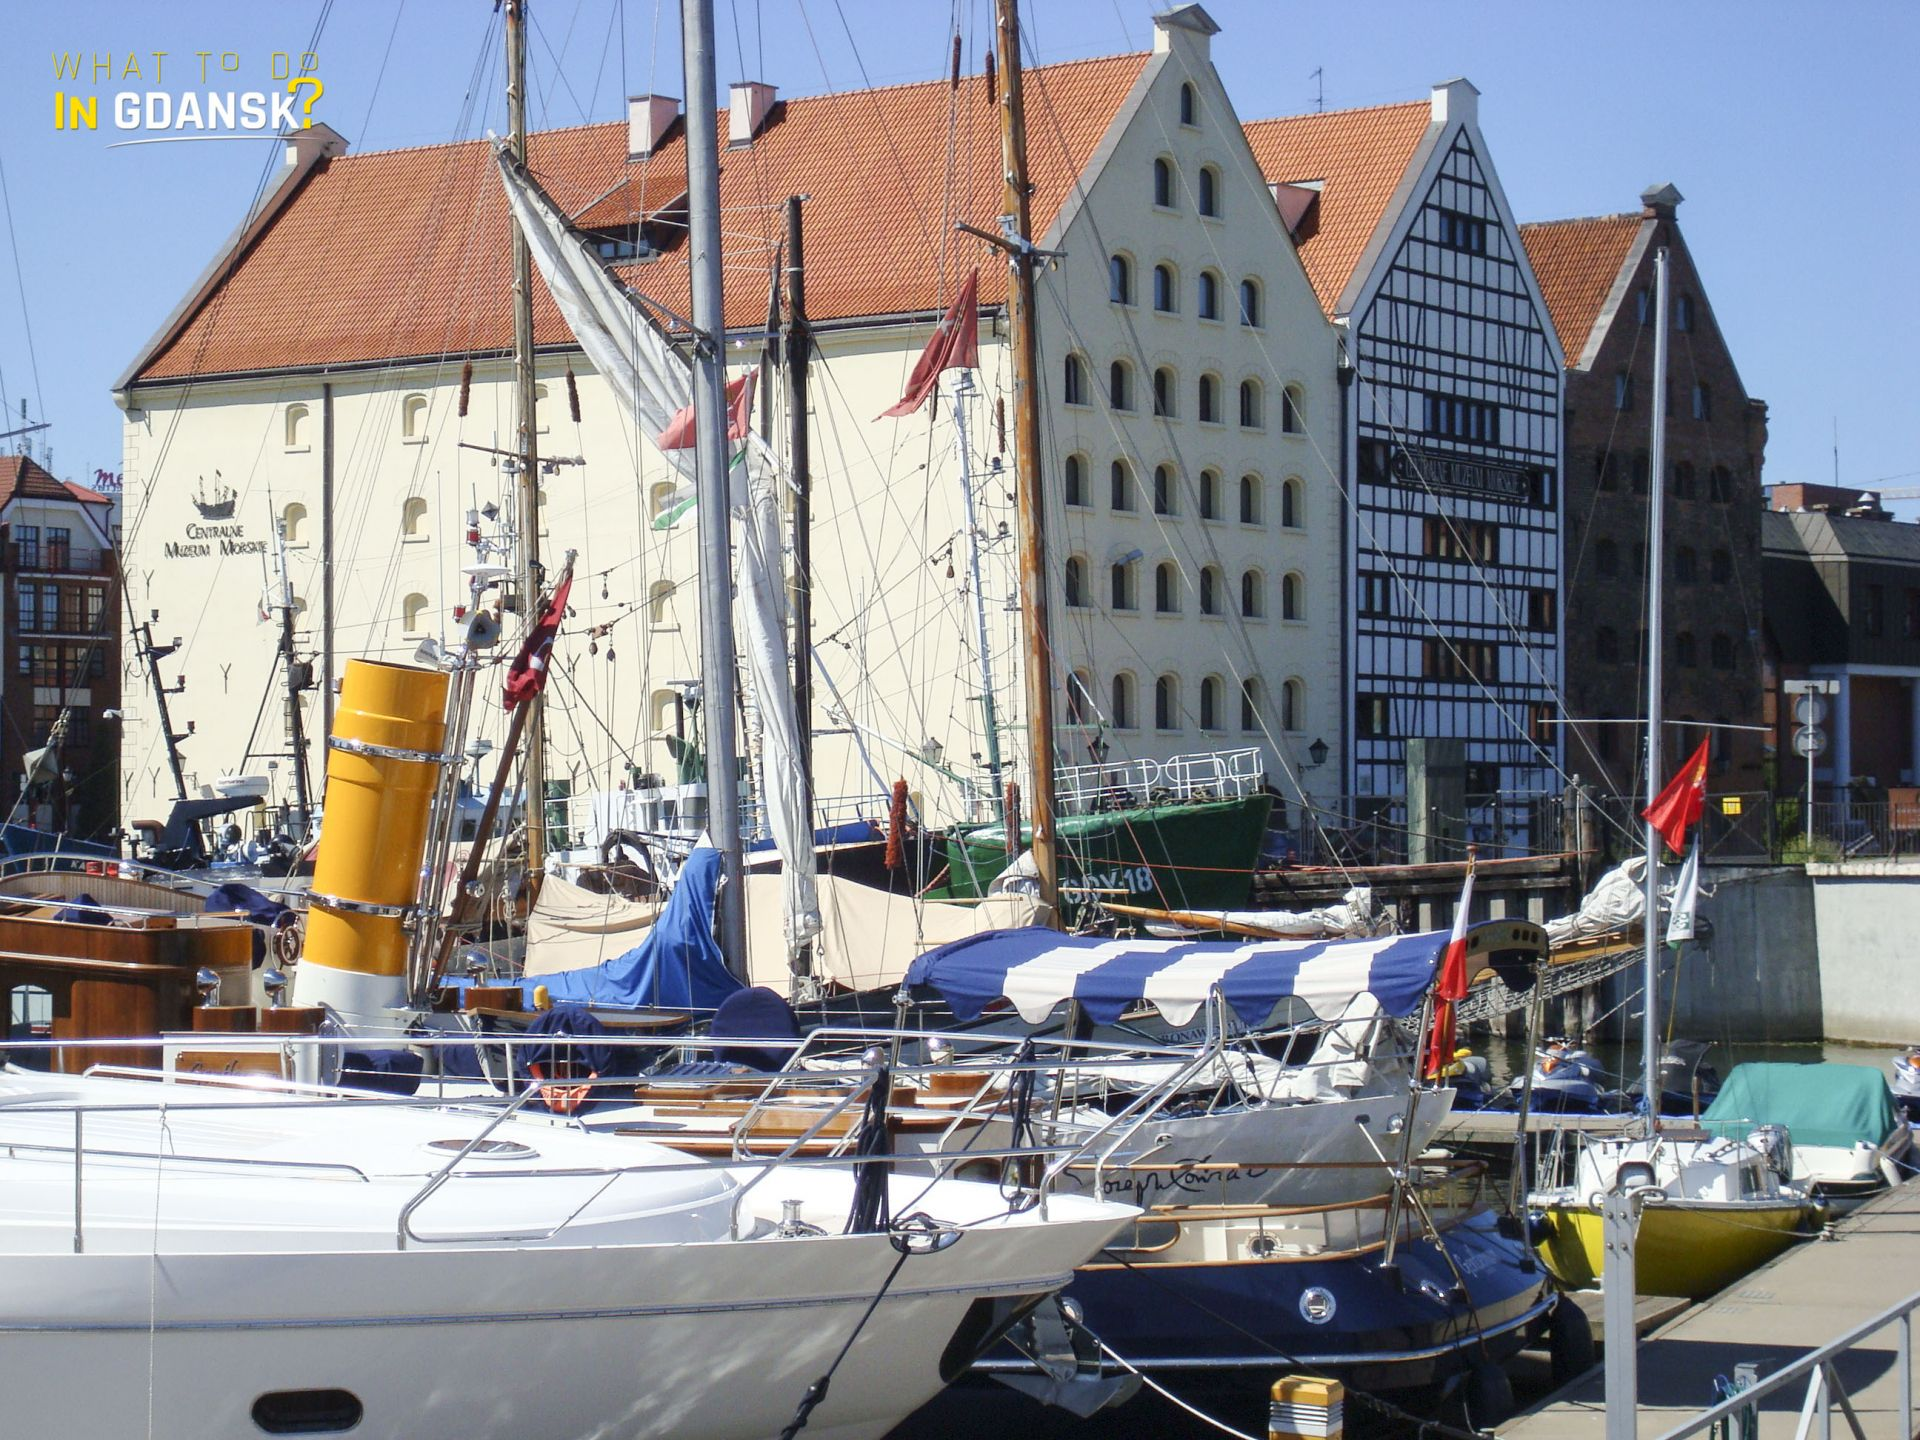 Second Day in Gdansk Daily Itineraries